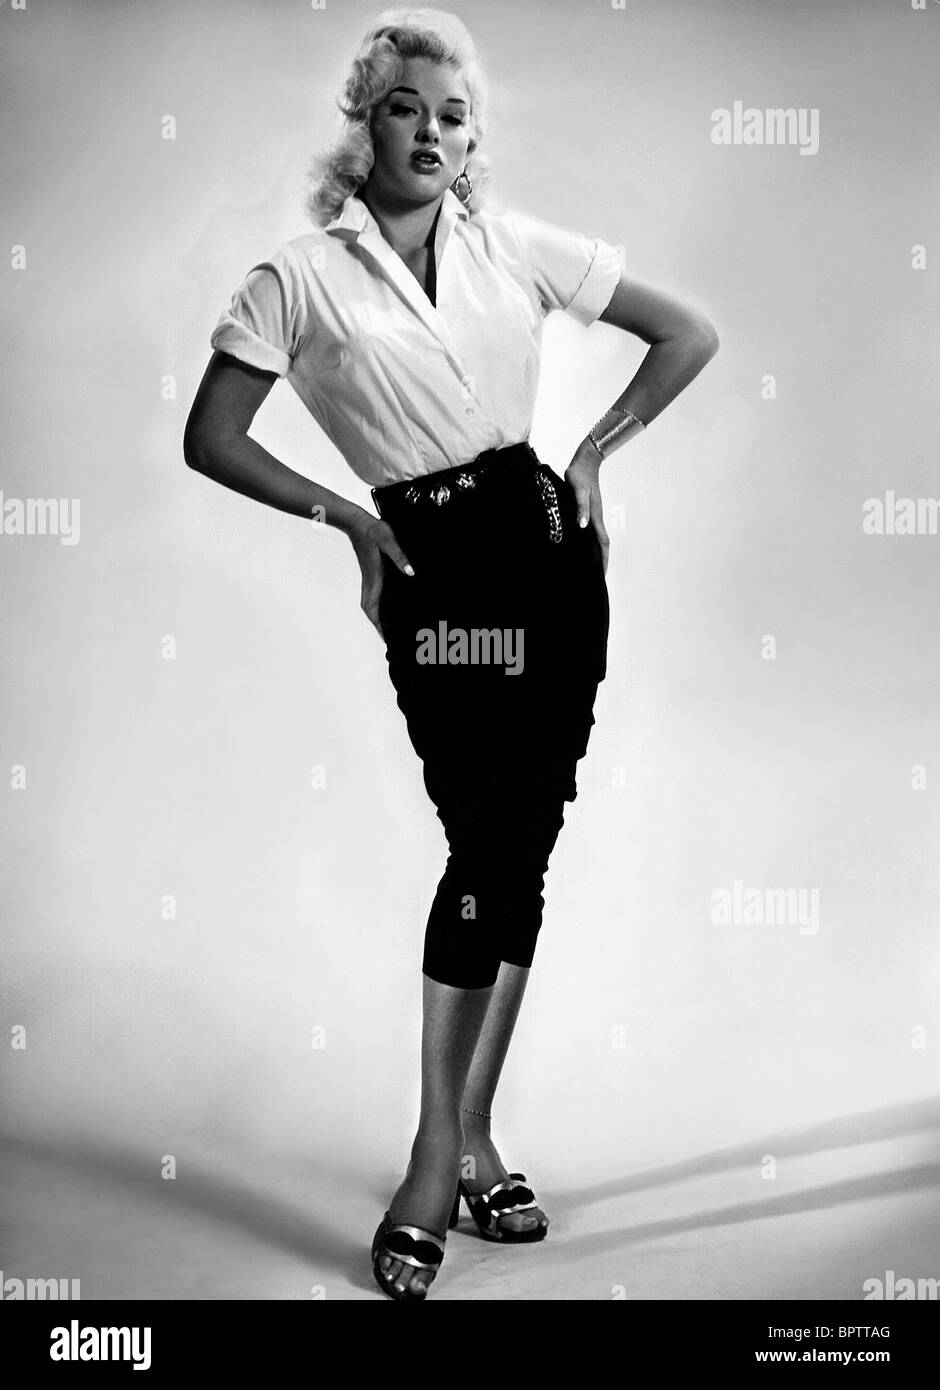 DIANA DORS ACTRESS (1957)  sc 1 st  Alamy & DIANA DORS ACTRESS (1957 Stock Photo: 31278760 - Alamy